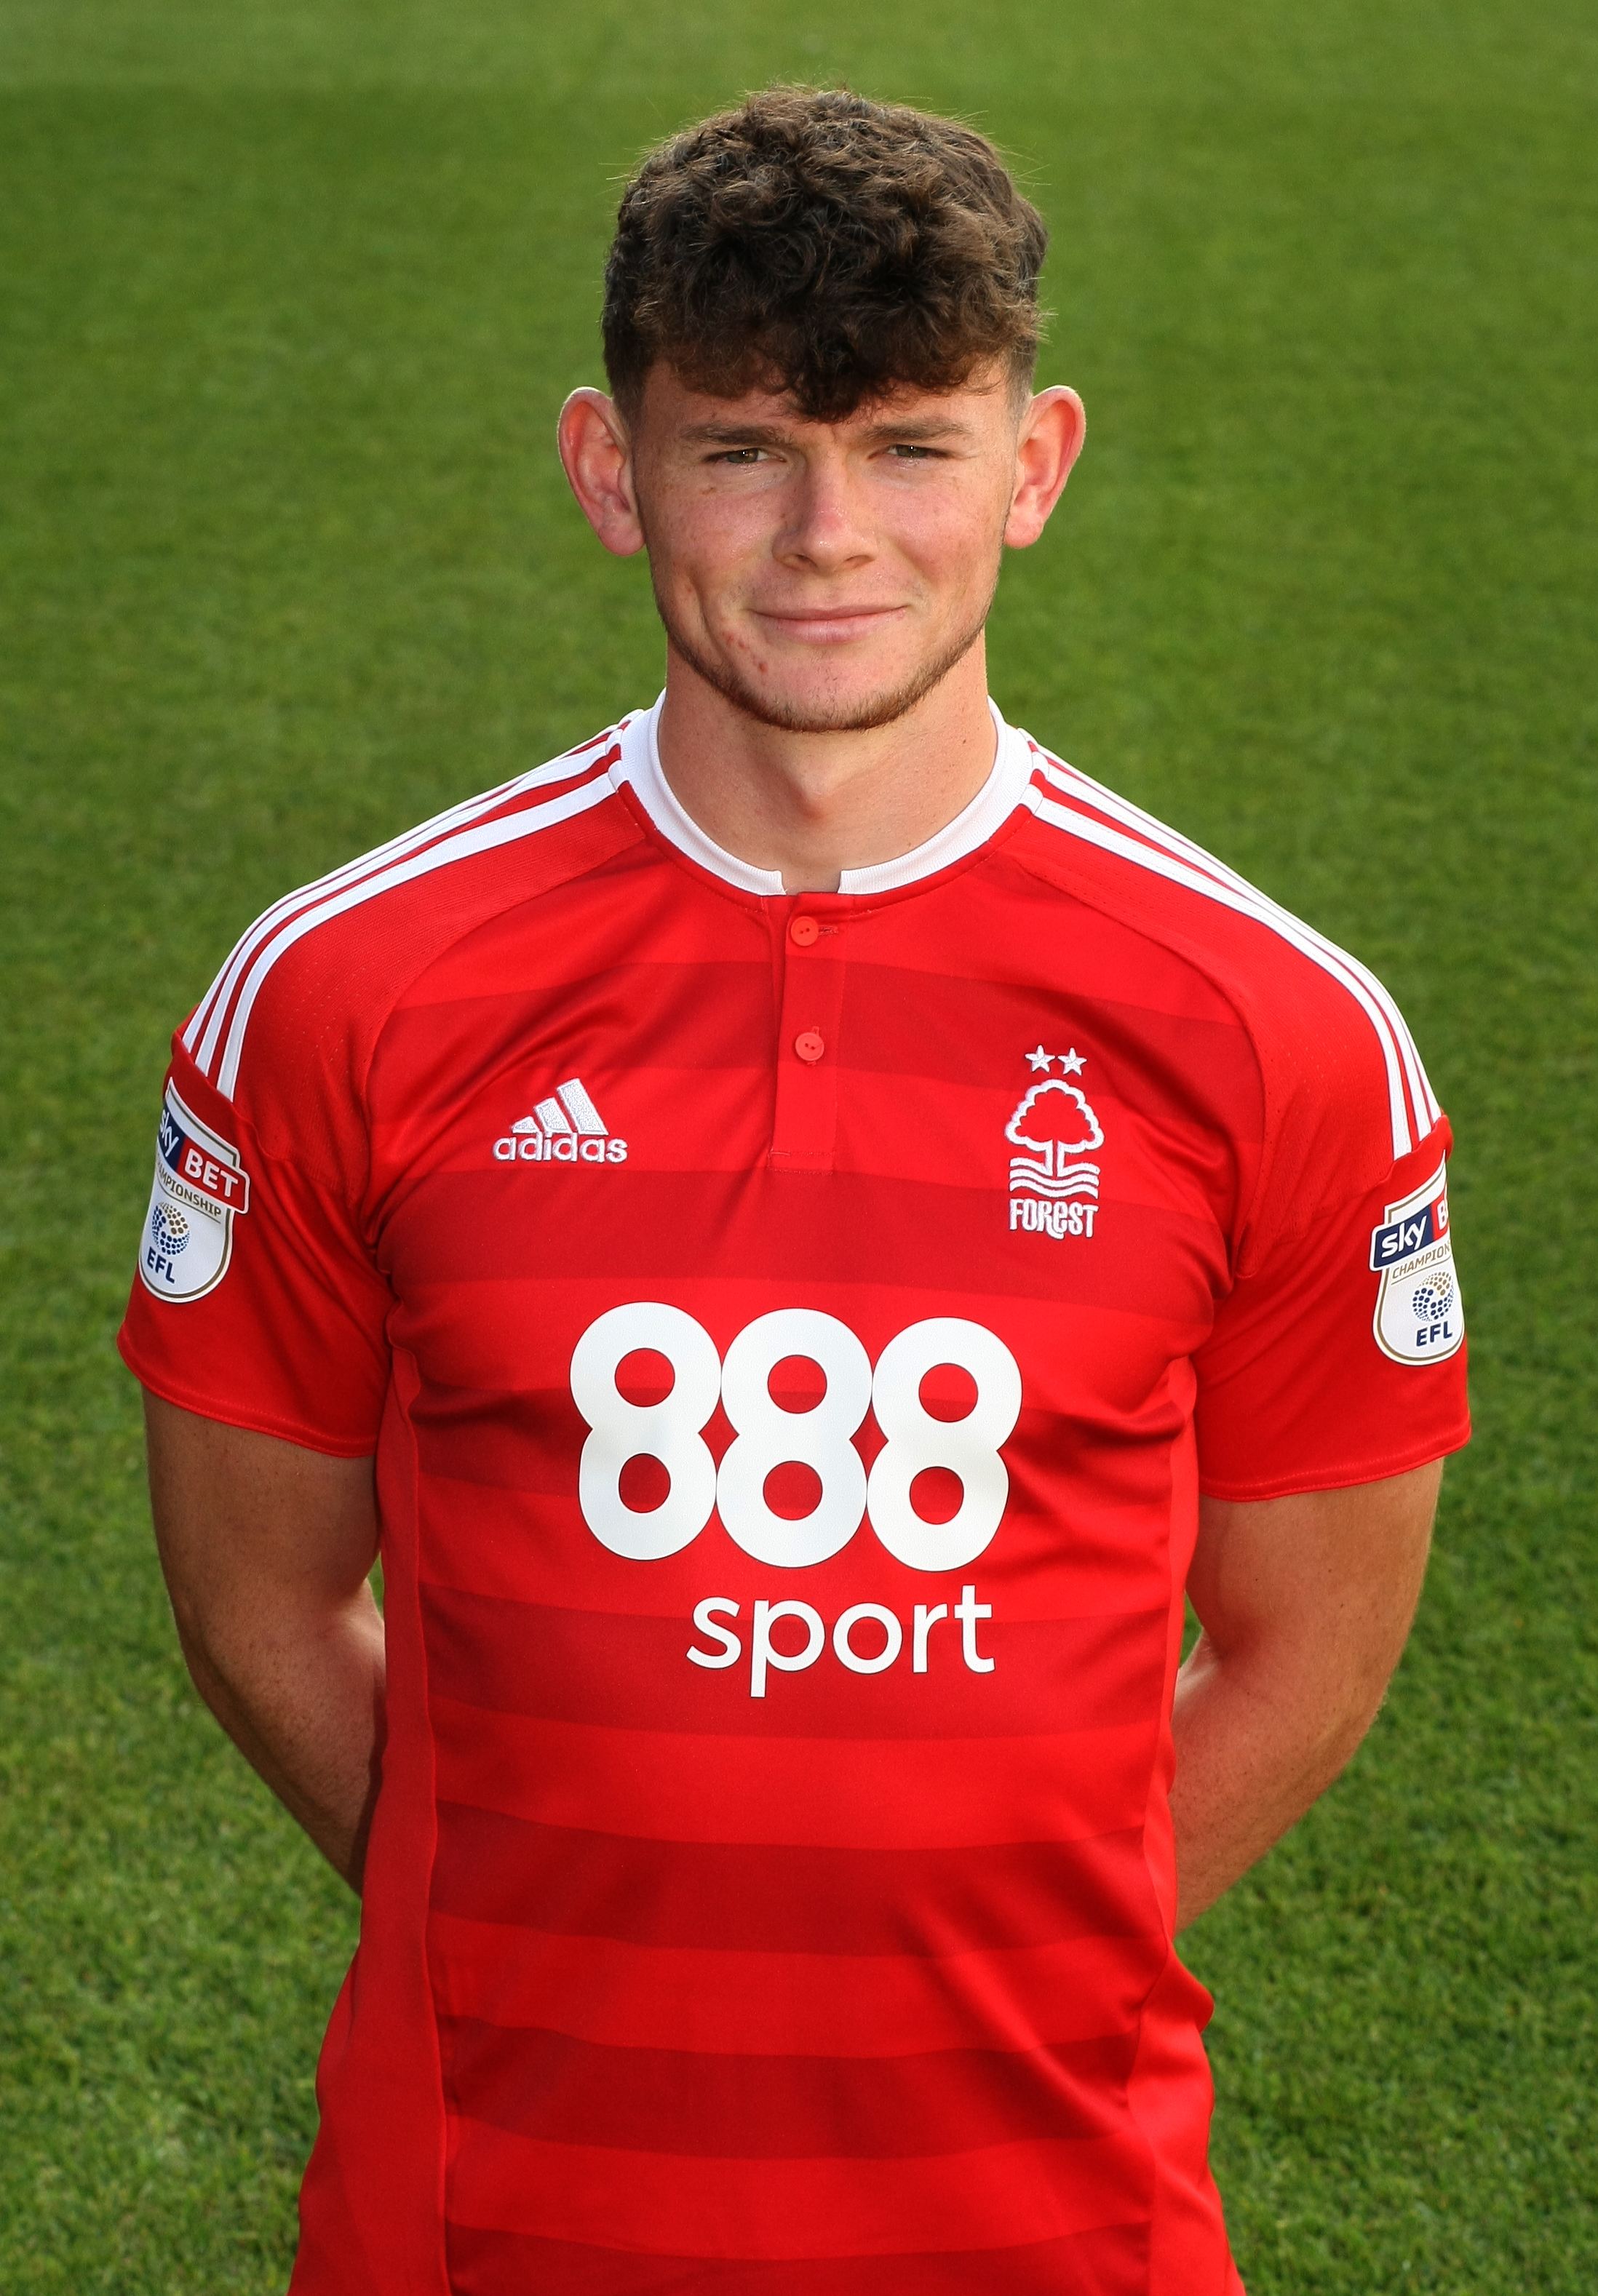 The 21-year old son of father (?) and mother(?) Oliver Burke in 2018 photo. Oliver Burke earned a  million dollar salary - leaving the net worth at 4 million in 2018